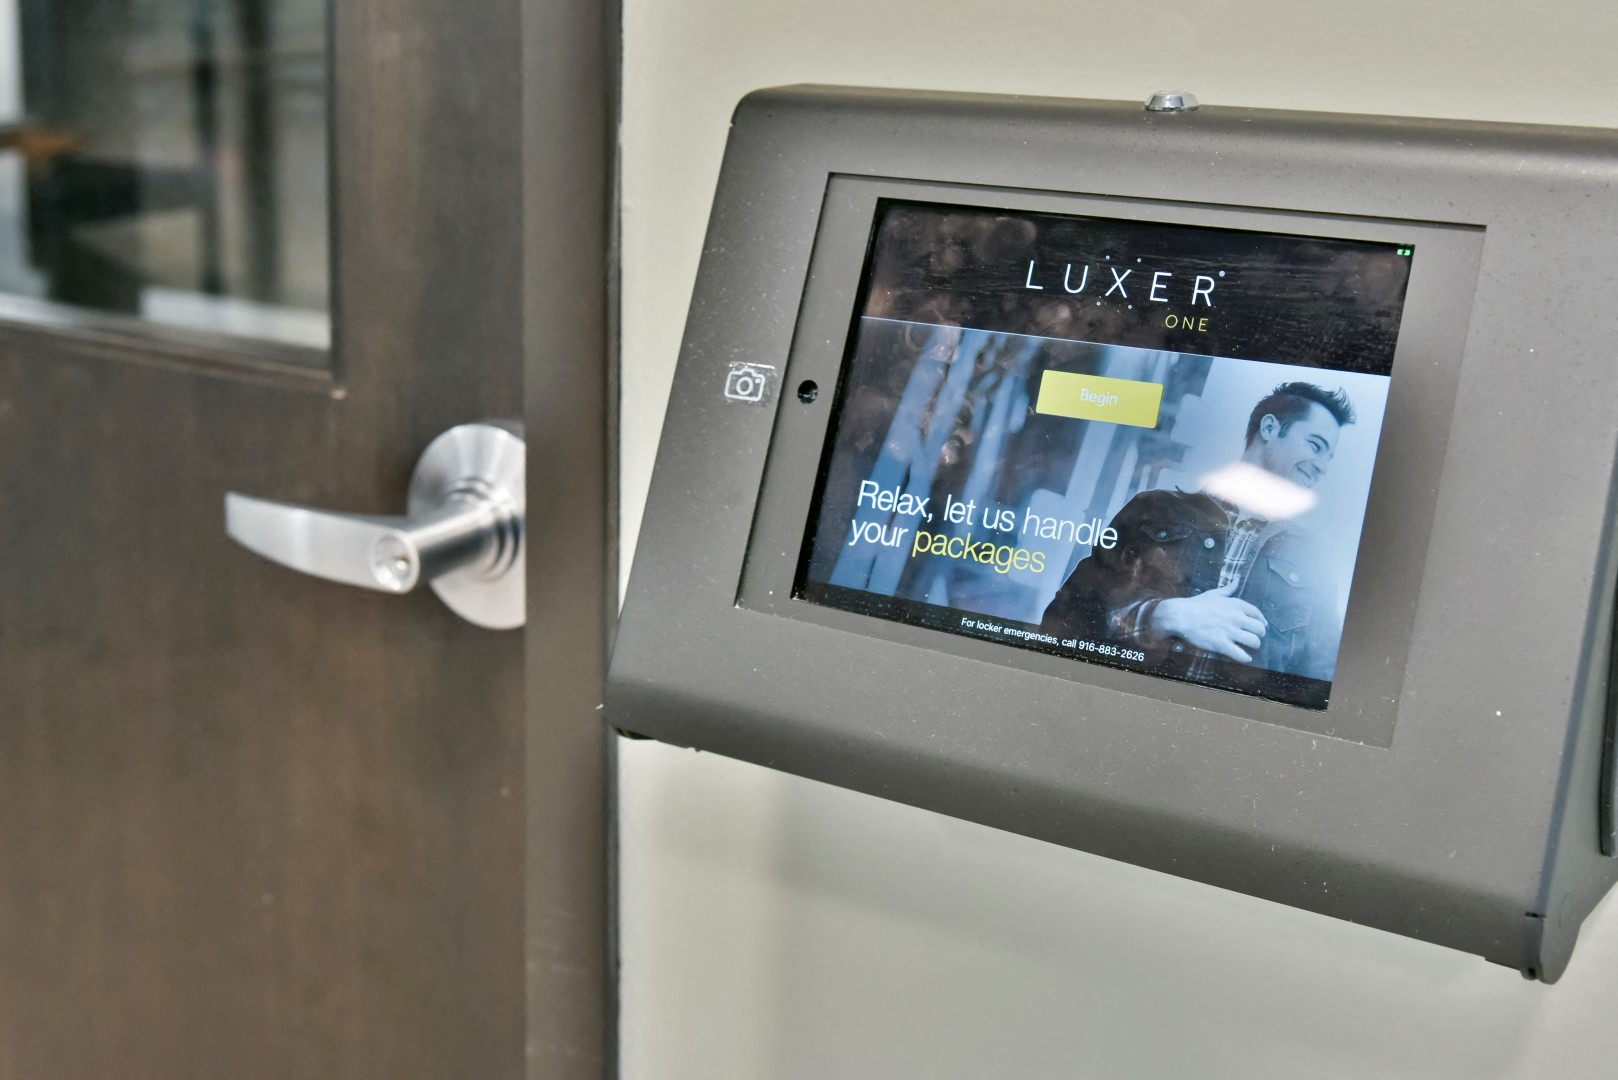 24/7 package acceptance with luxer one package room